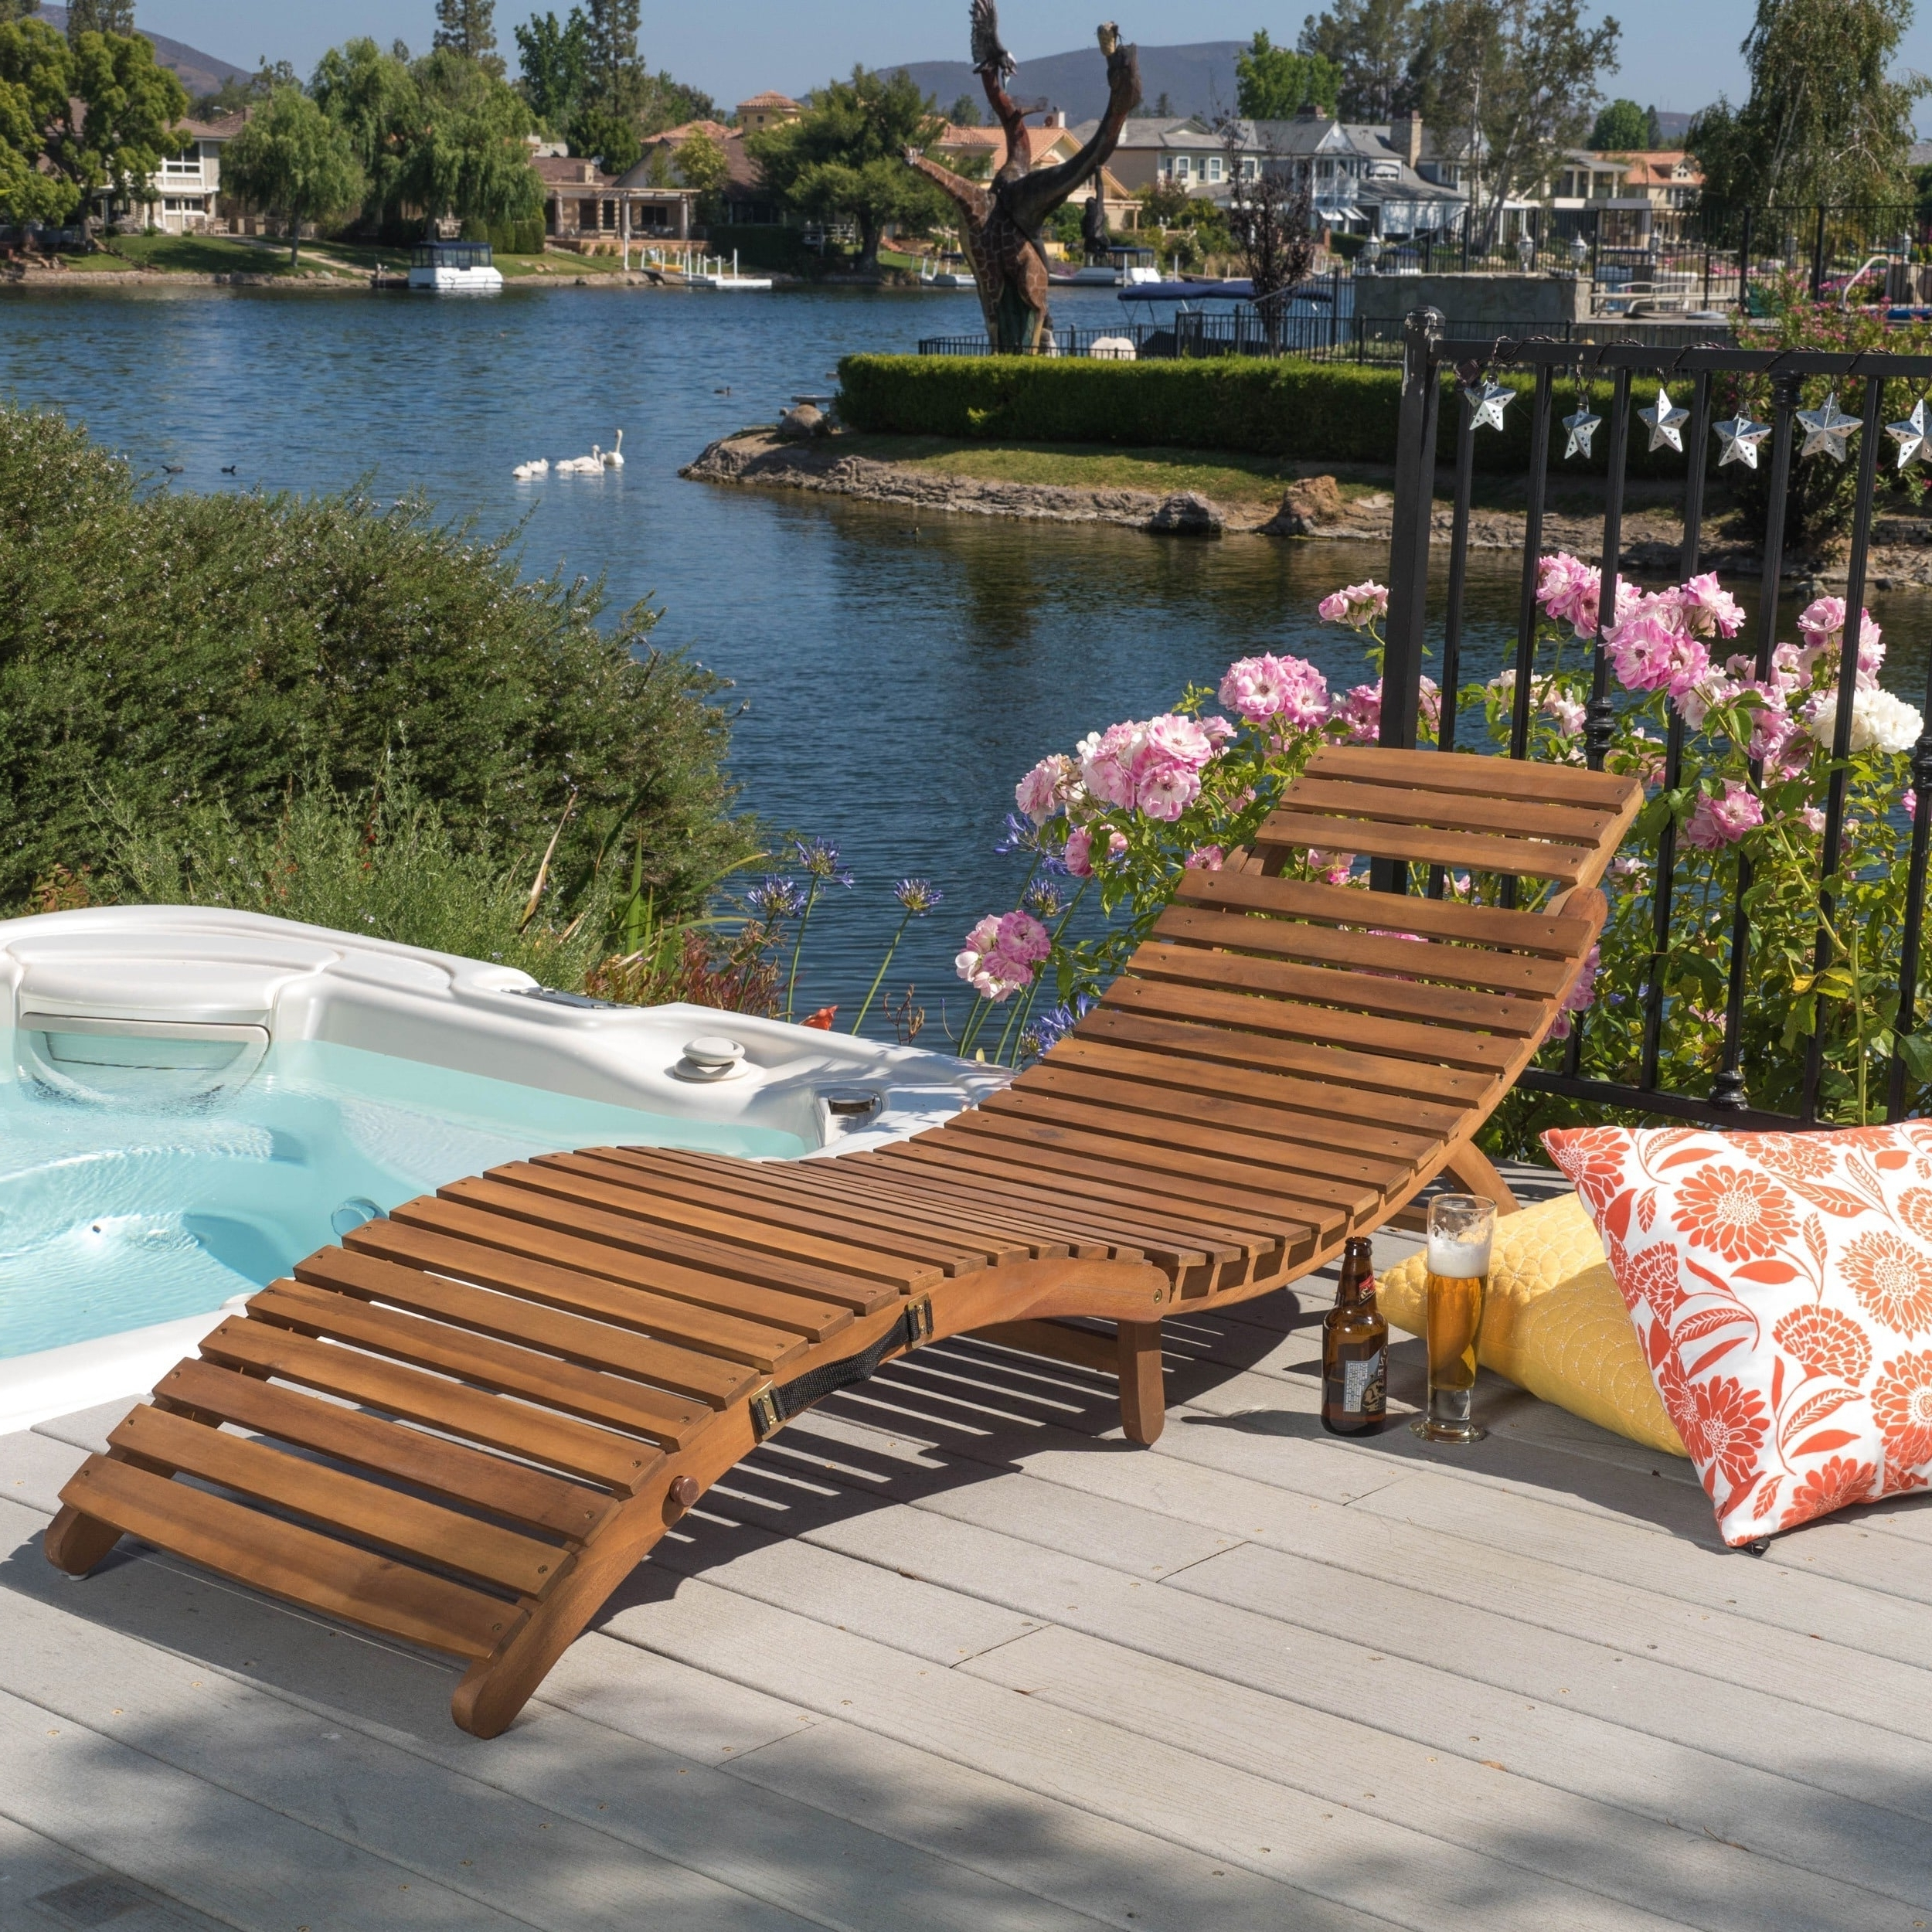 Newest Lahaina Outdoor Acacia Wood Chaise Loungechristopher Knight Pertaining To Wood Chaise Lounges (View 7 of 15)